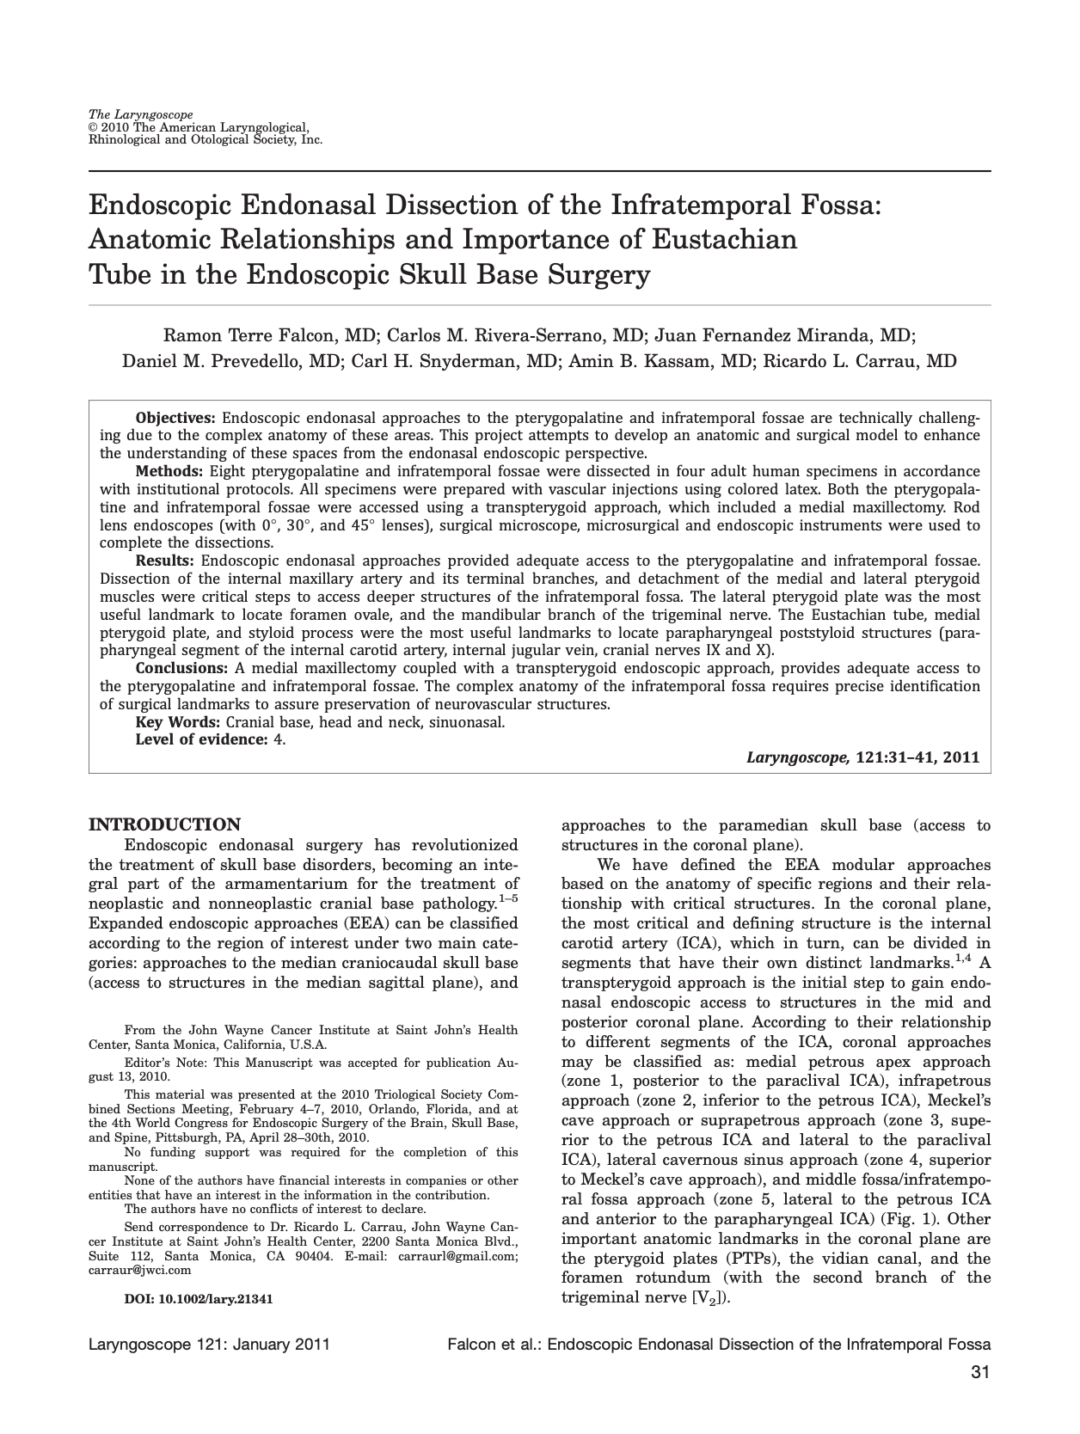 Endoscopic Endonasal Dissection of the Infratemporal Fossa: Anatomic Relationships and Importance of Eustachian Tube in the Endoscopic Skull Base Surgery